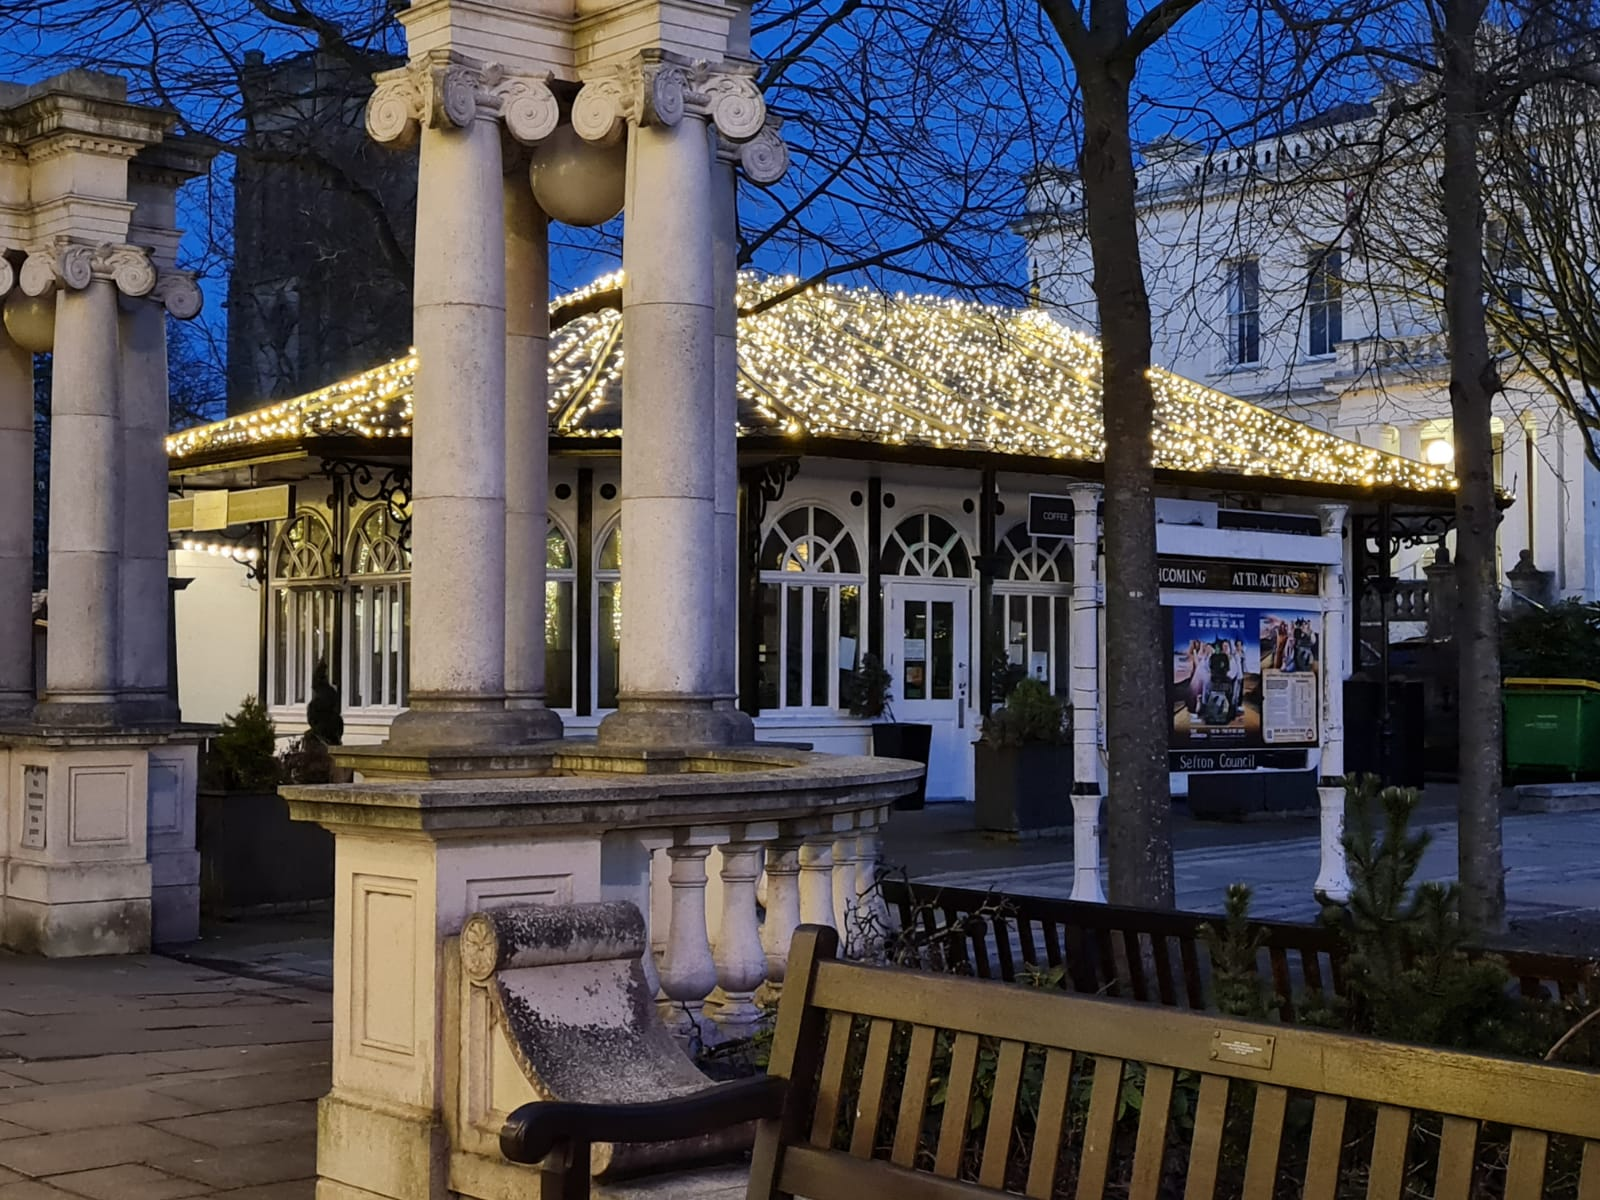 IllumiDex UK Ltd has provided new lighting at the Remedy cafe on Lord Street in Southport